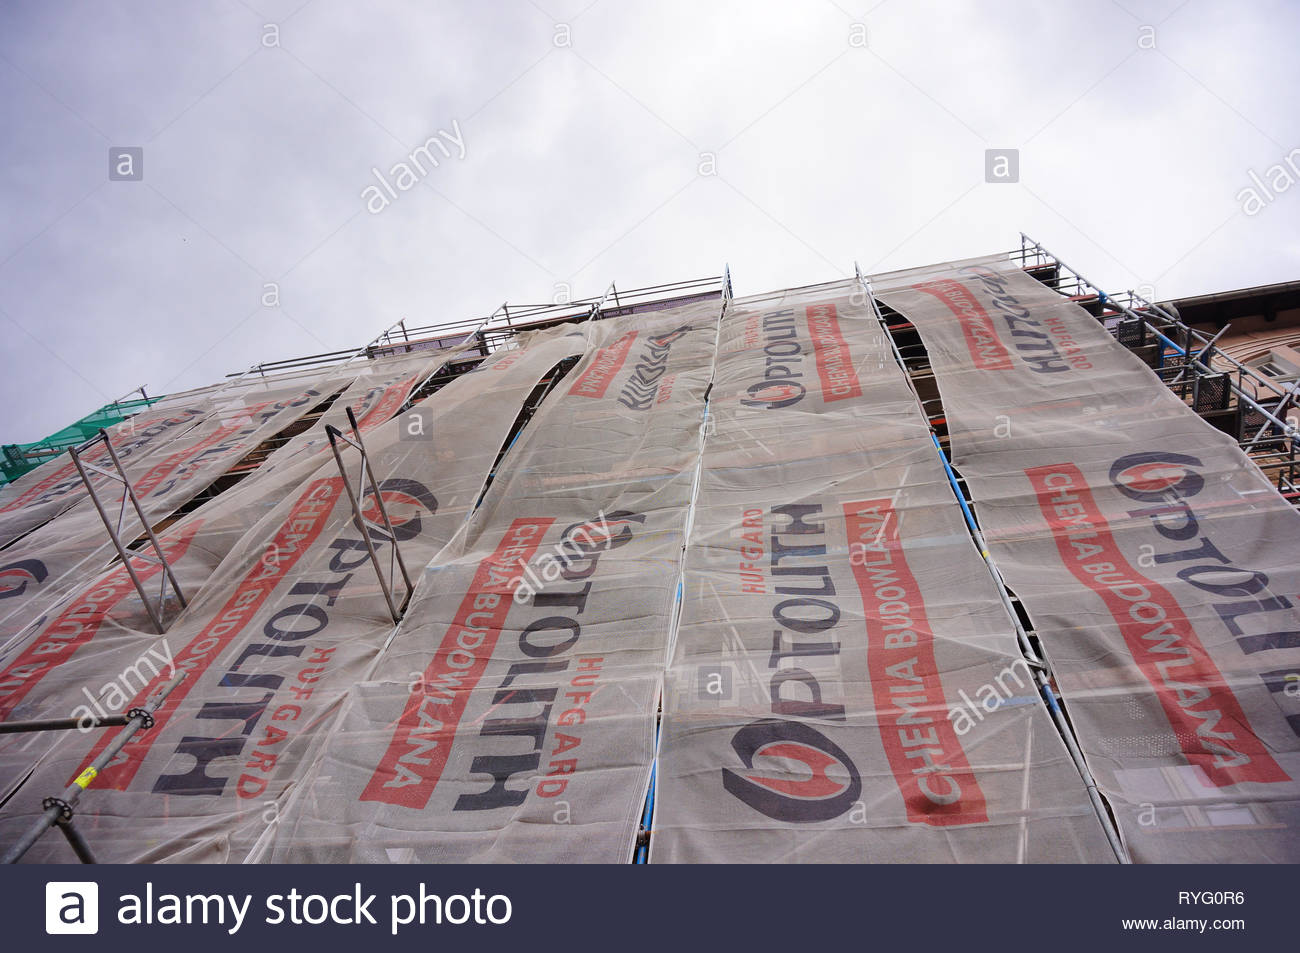 Poznan, Poland - March 8, 2019: Building under renovation by the Ptolith construction company. Stock Photo